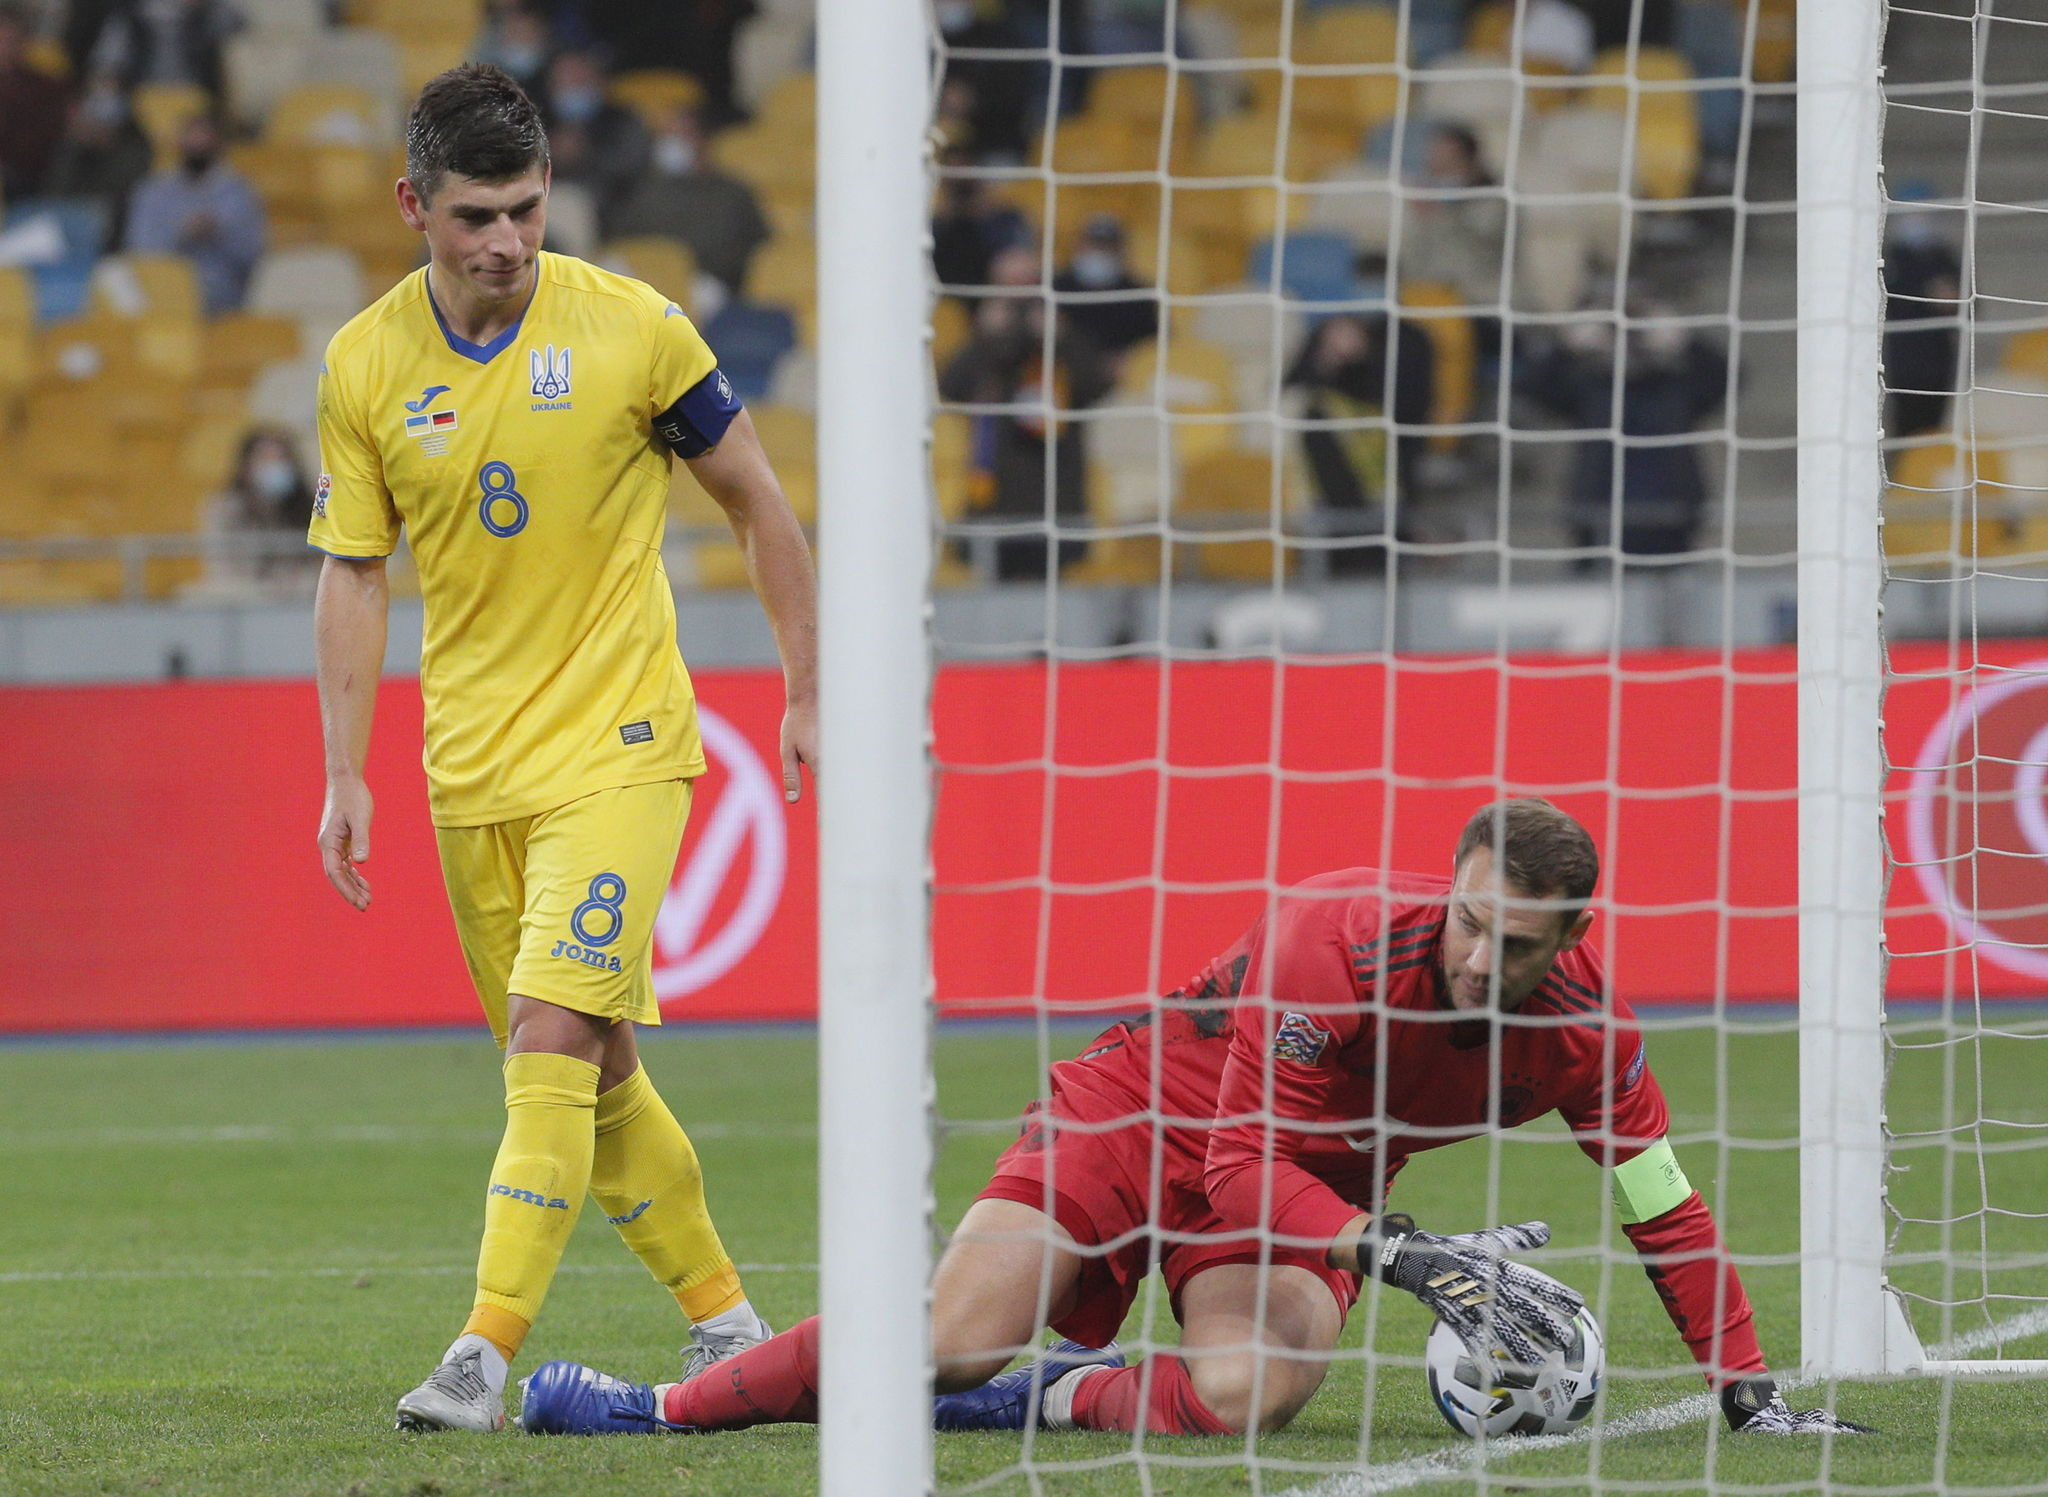 Kiev ( lt;HIT gt;Ukraine lt;/HIT gt;), 10/10/2020.- Ruslan Malinovskyi (L) of lt;HIT gt;Ukraine lt;/HIT gt; reacts after scoring from the penalty spot during the UEFA Nations League group stage, league A, group 4 soccer match between lt;HIT gt;Ukraine lt;/HIT gt; and Germany in Kiev, lt;HIT gt;Ukraine lt;/HIT gt;, 10 October 2020. (Alemania, Ucrania) EFE/EPA/SERGEY DOLZHENKO